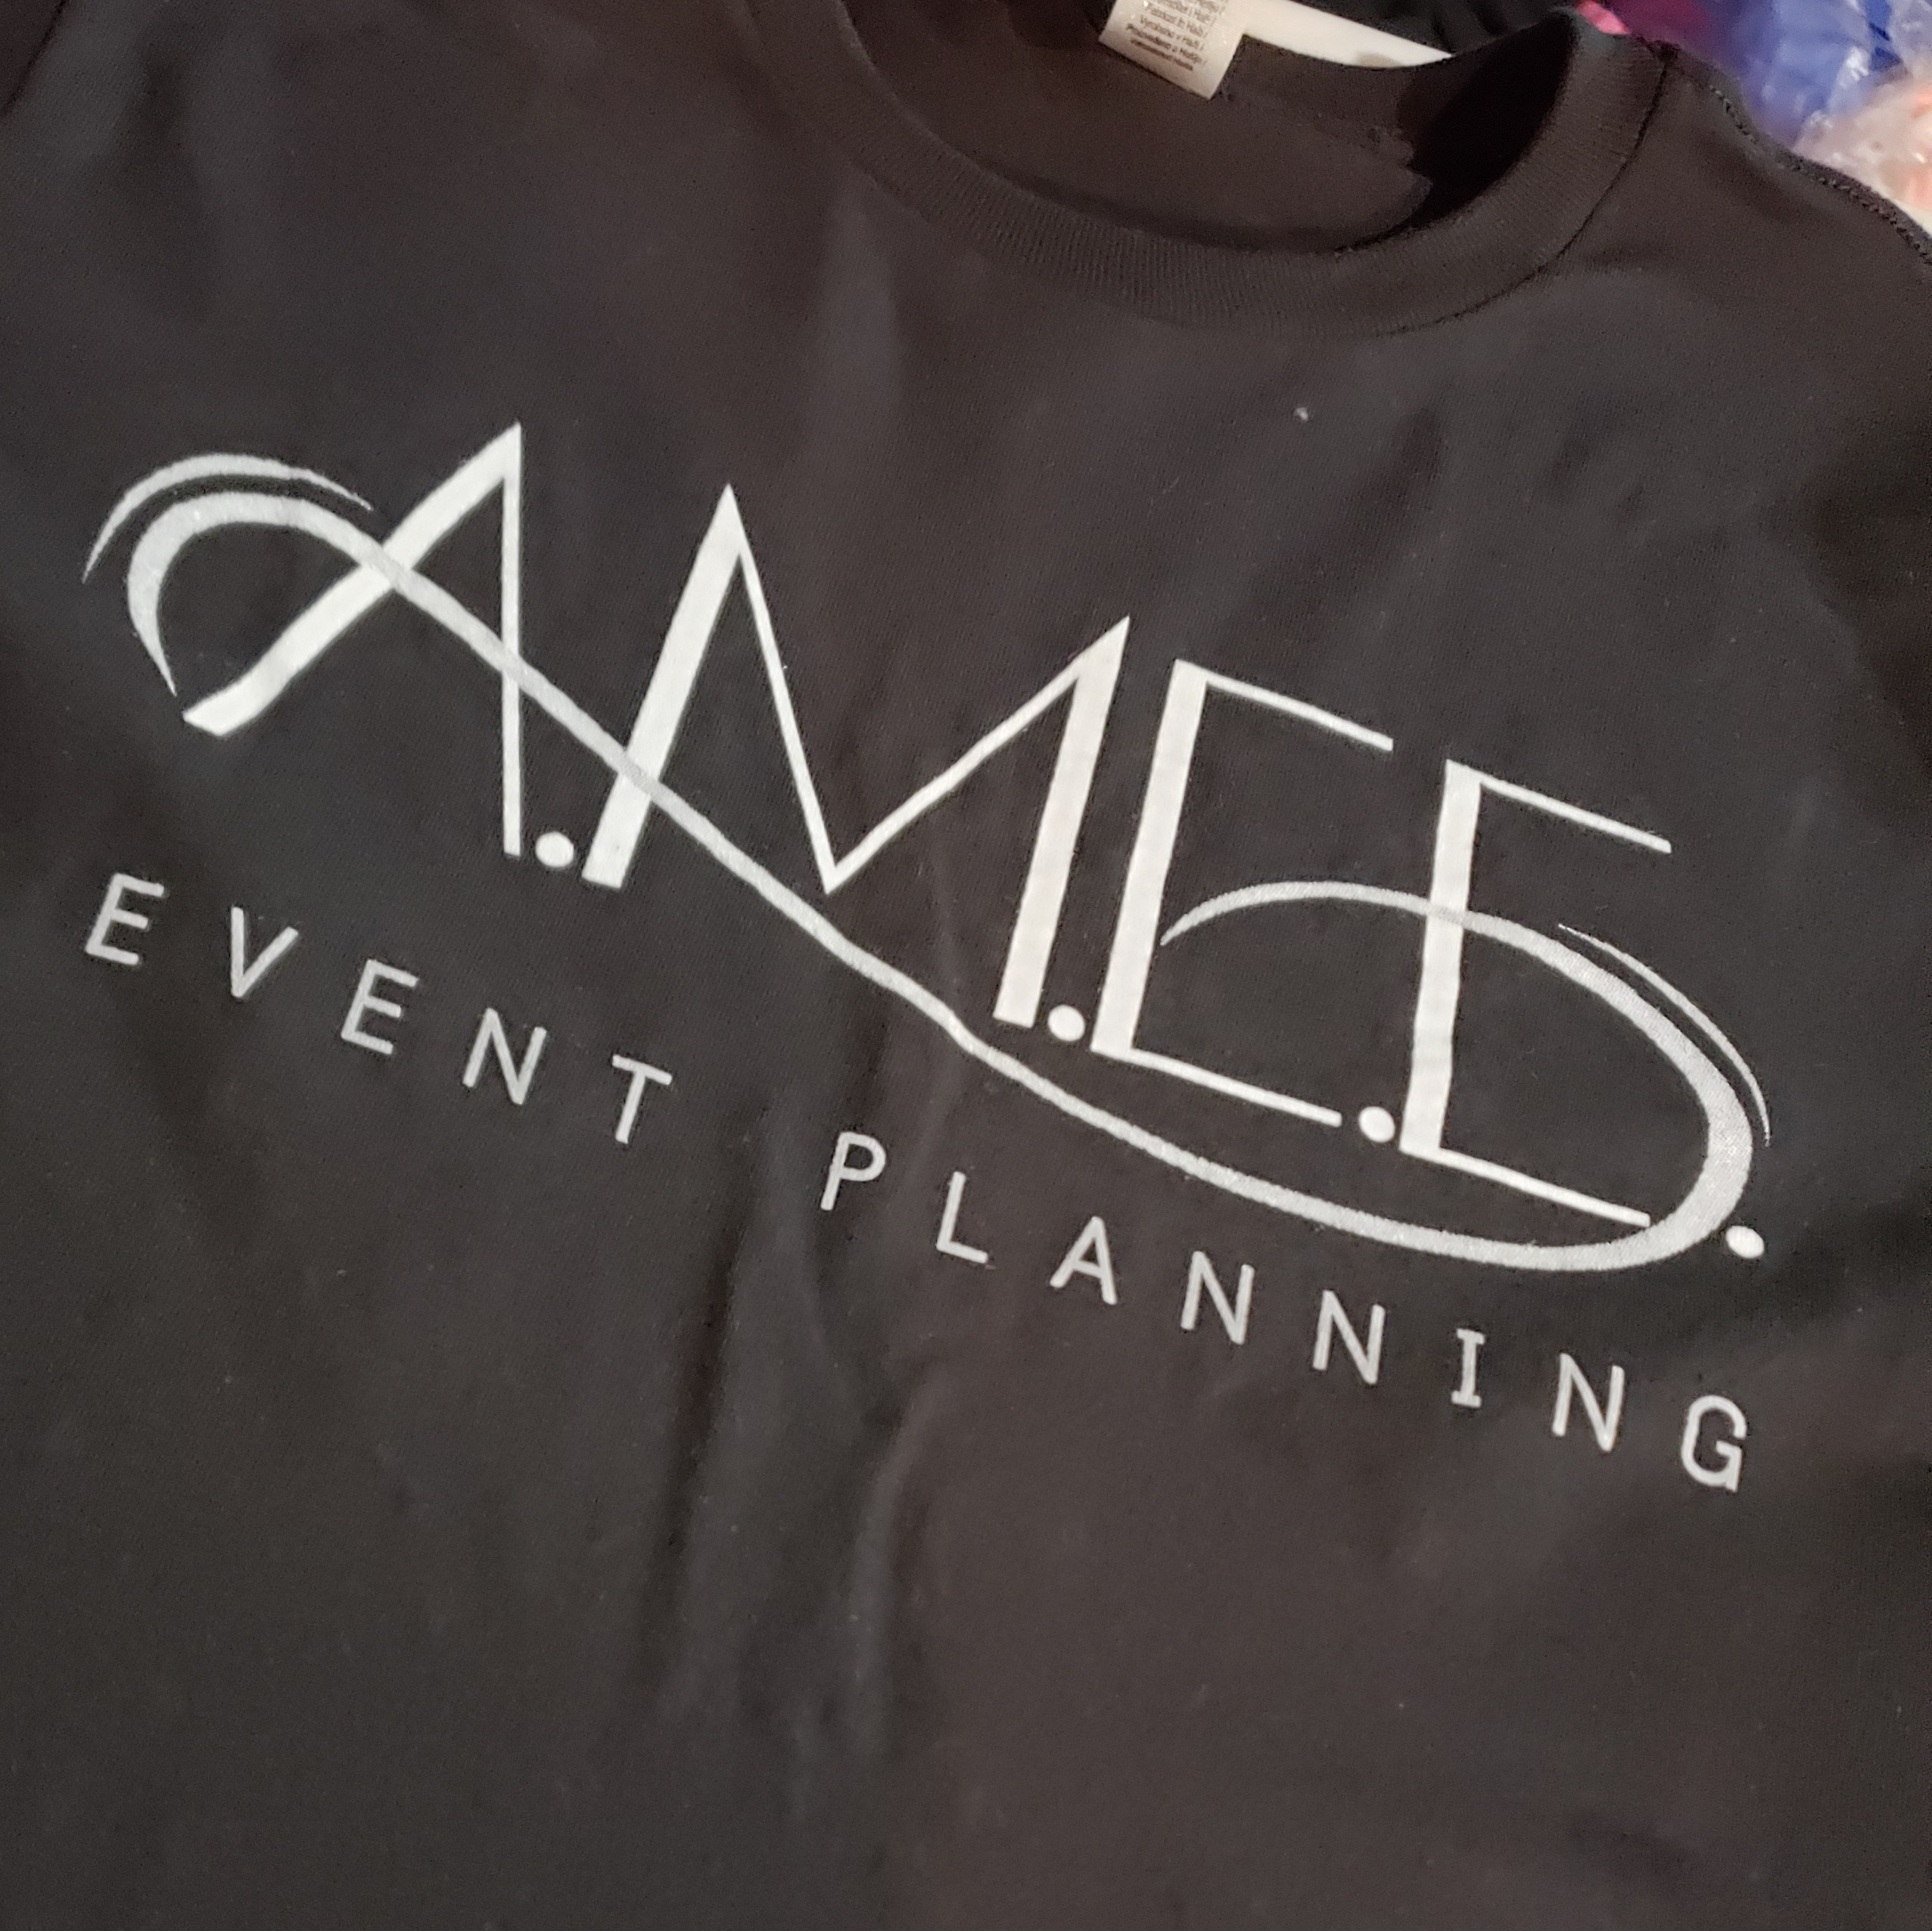 Screen print tee for small business